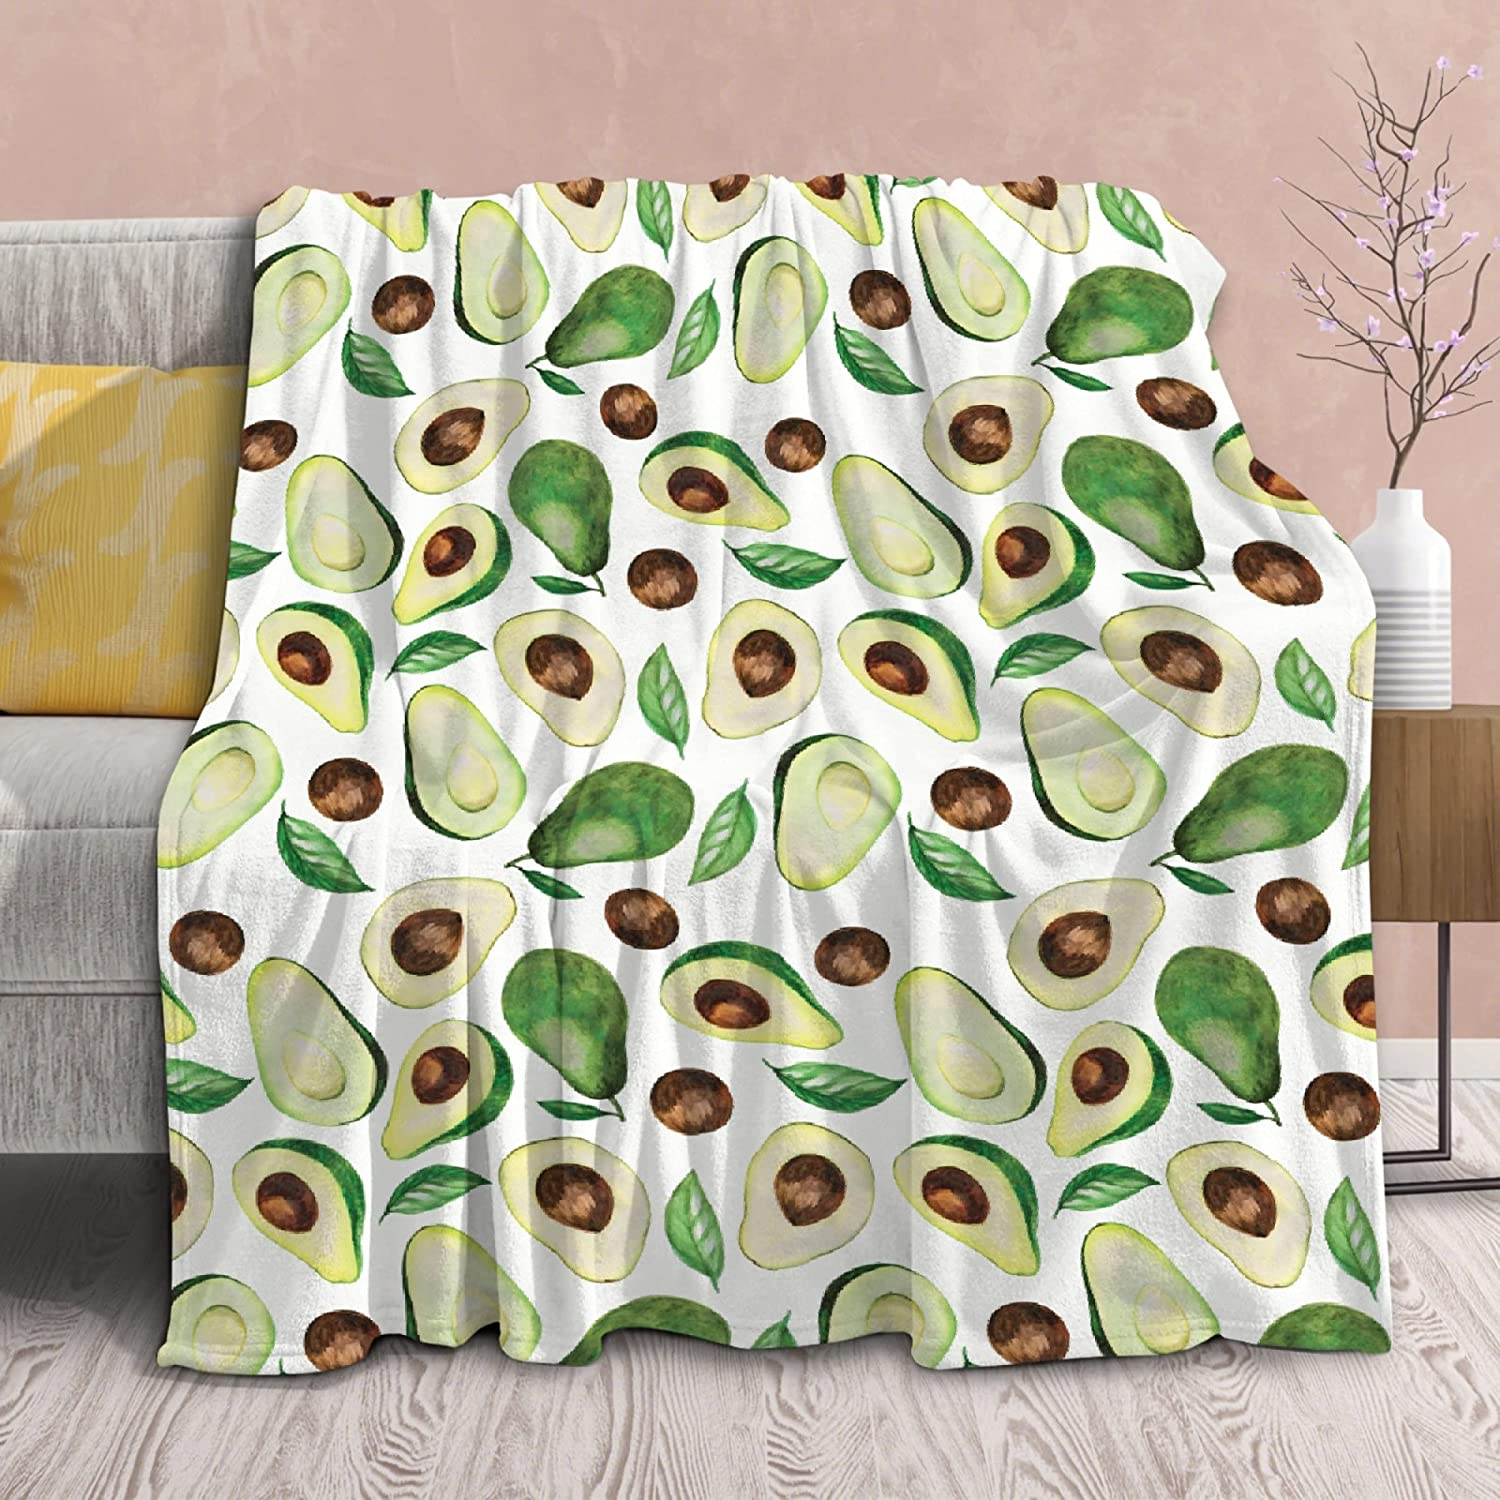 Cute Fruit Avocado Pattern Blanket Soft Super sale Topics on TV period limited Ultra Throw Lightweight